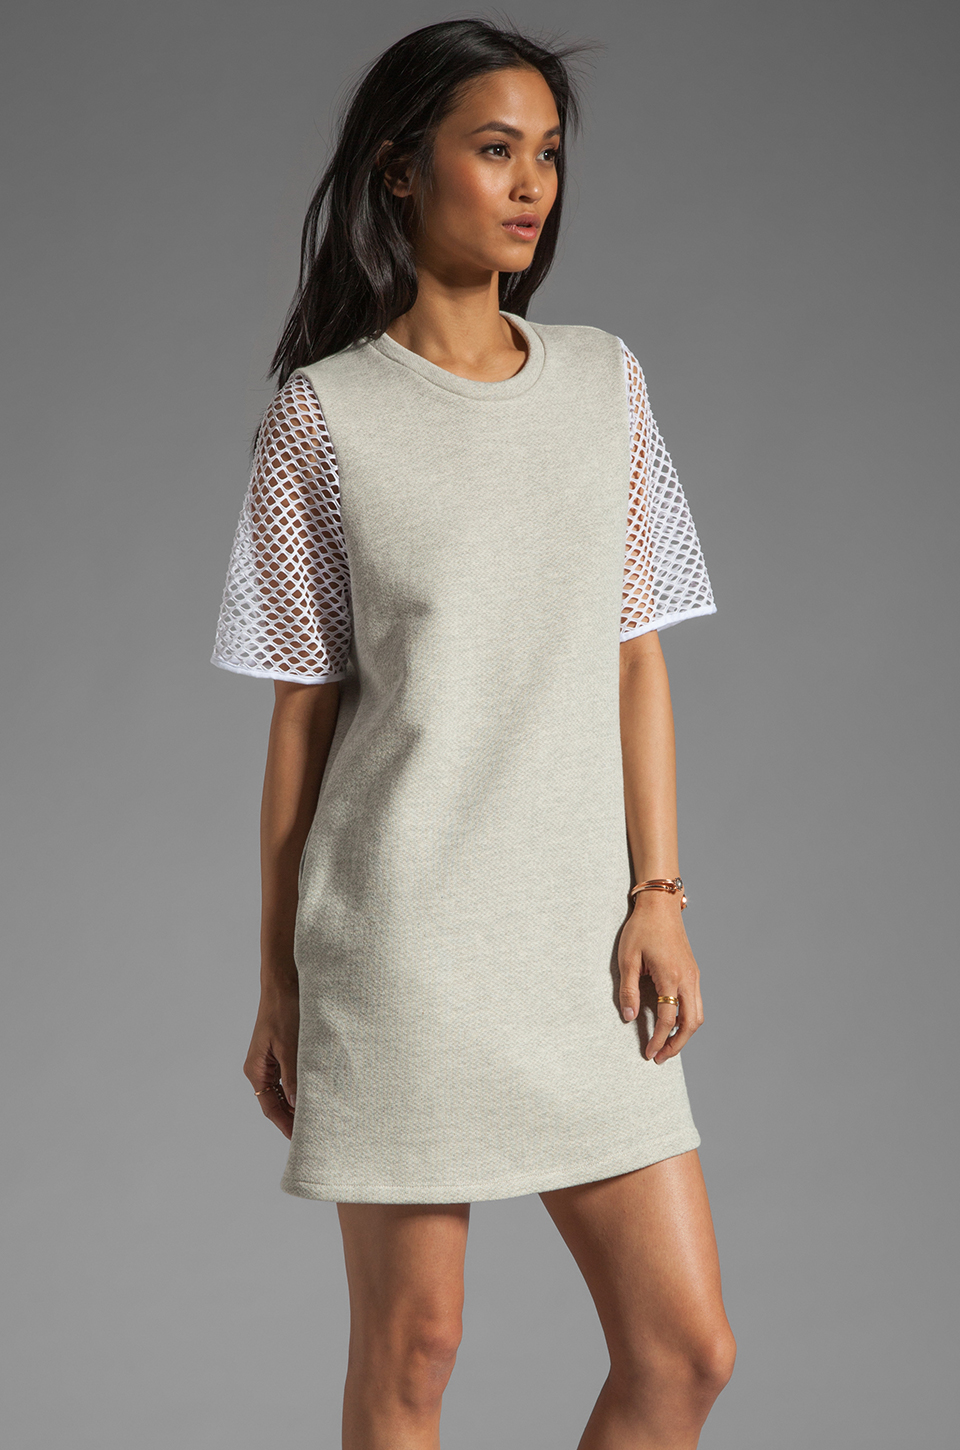 Riller & Fount Yasmin Short Sleeve Tunic in Dove/White Fishnet